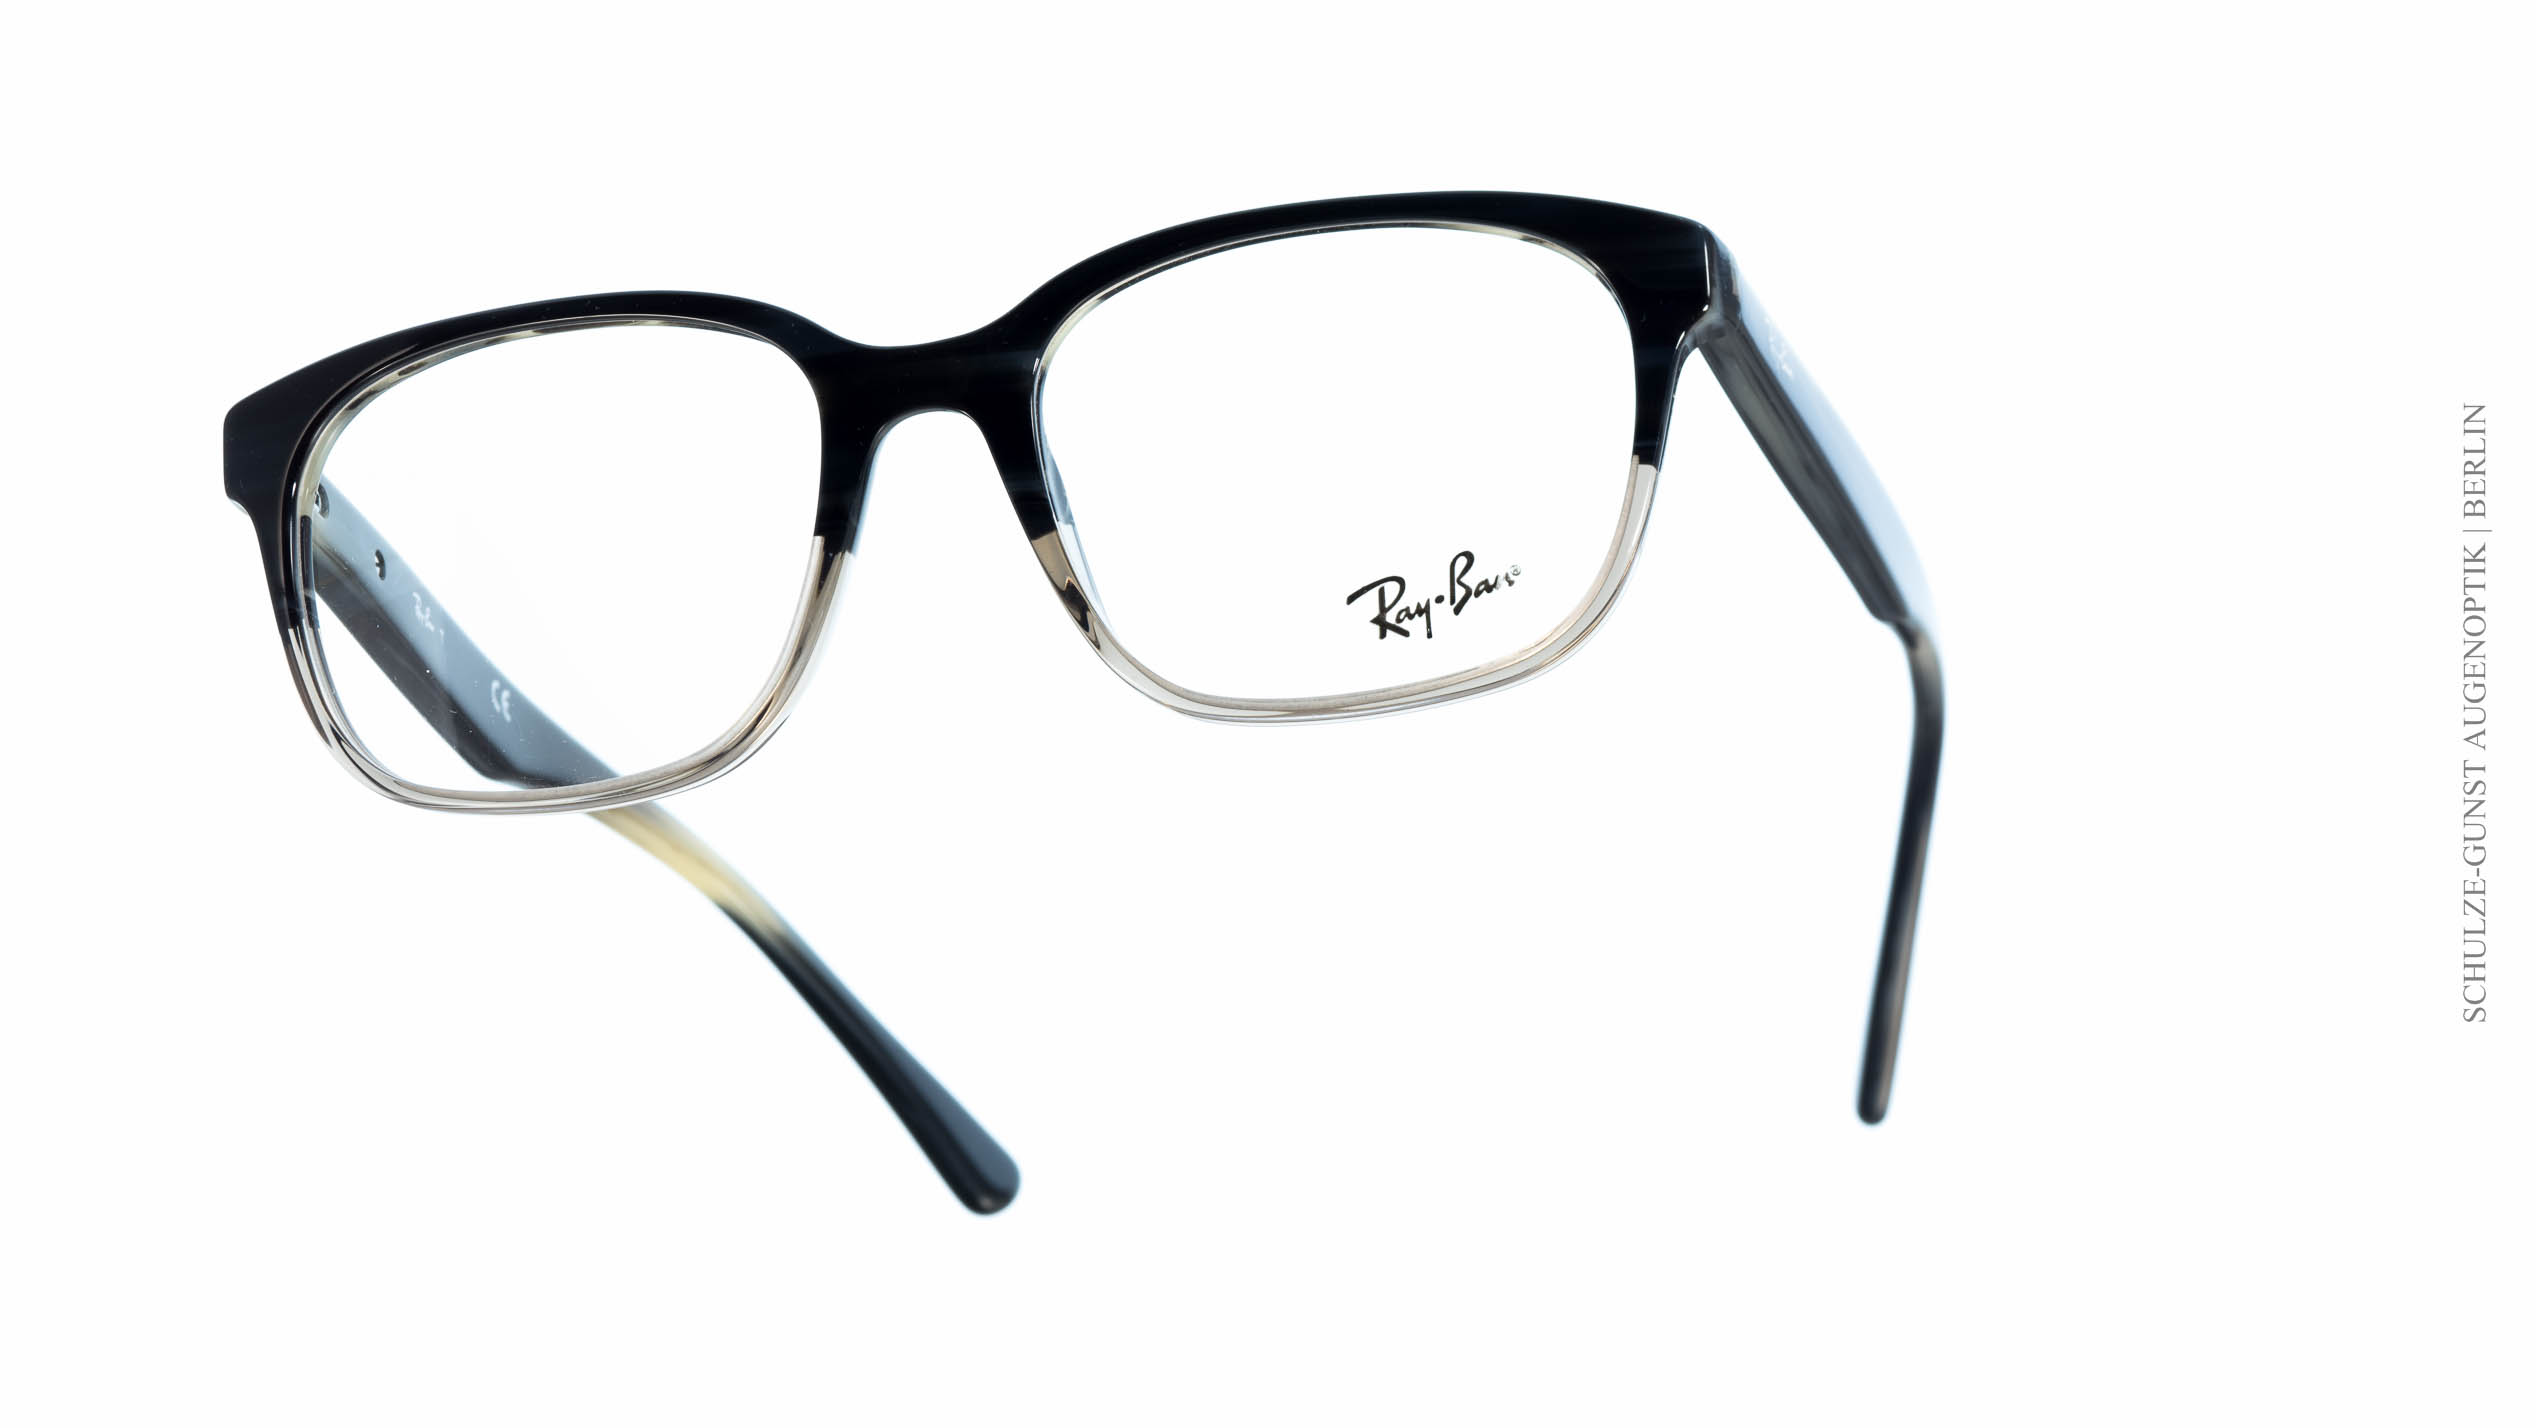 ray ban brille schwarz transparent